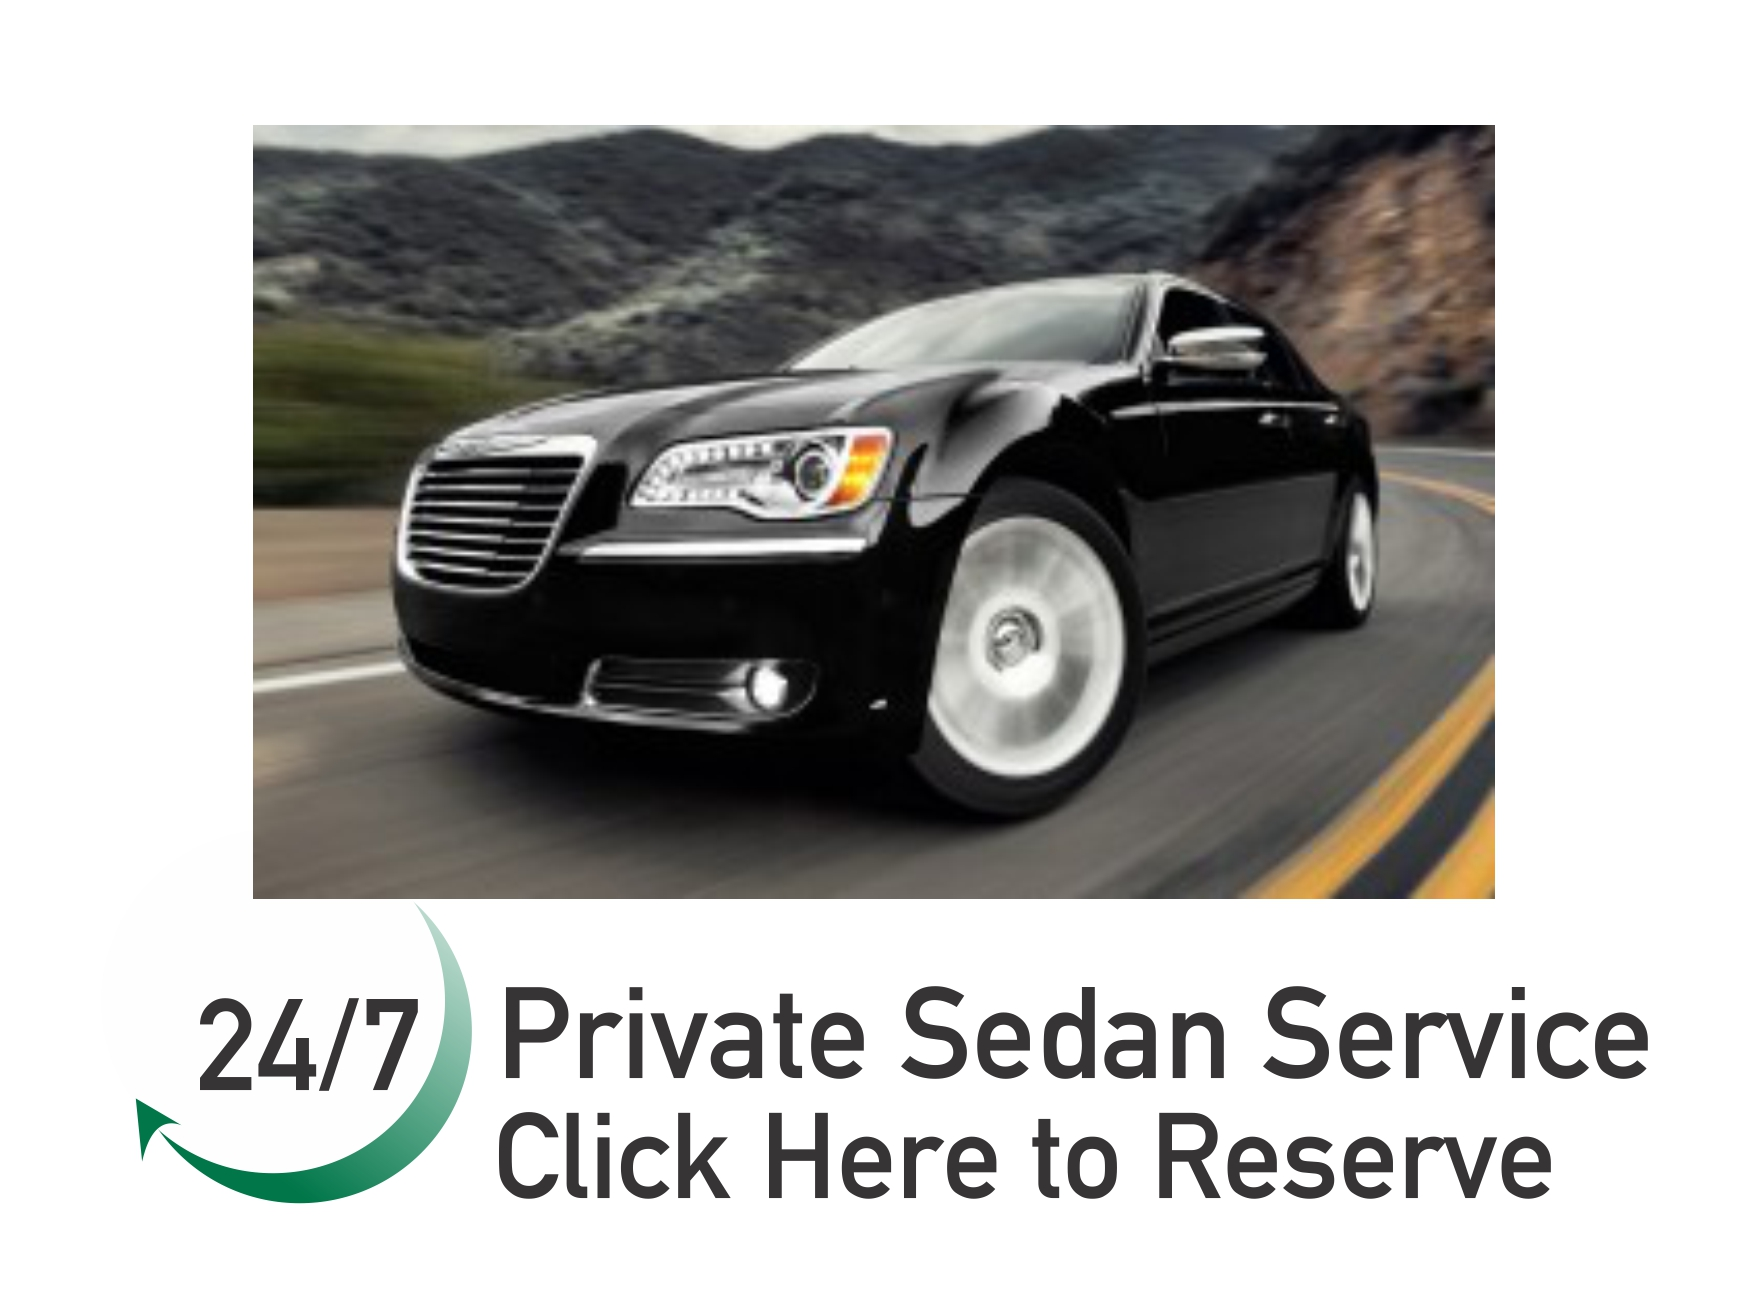 Click here to reserve.